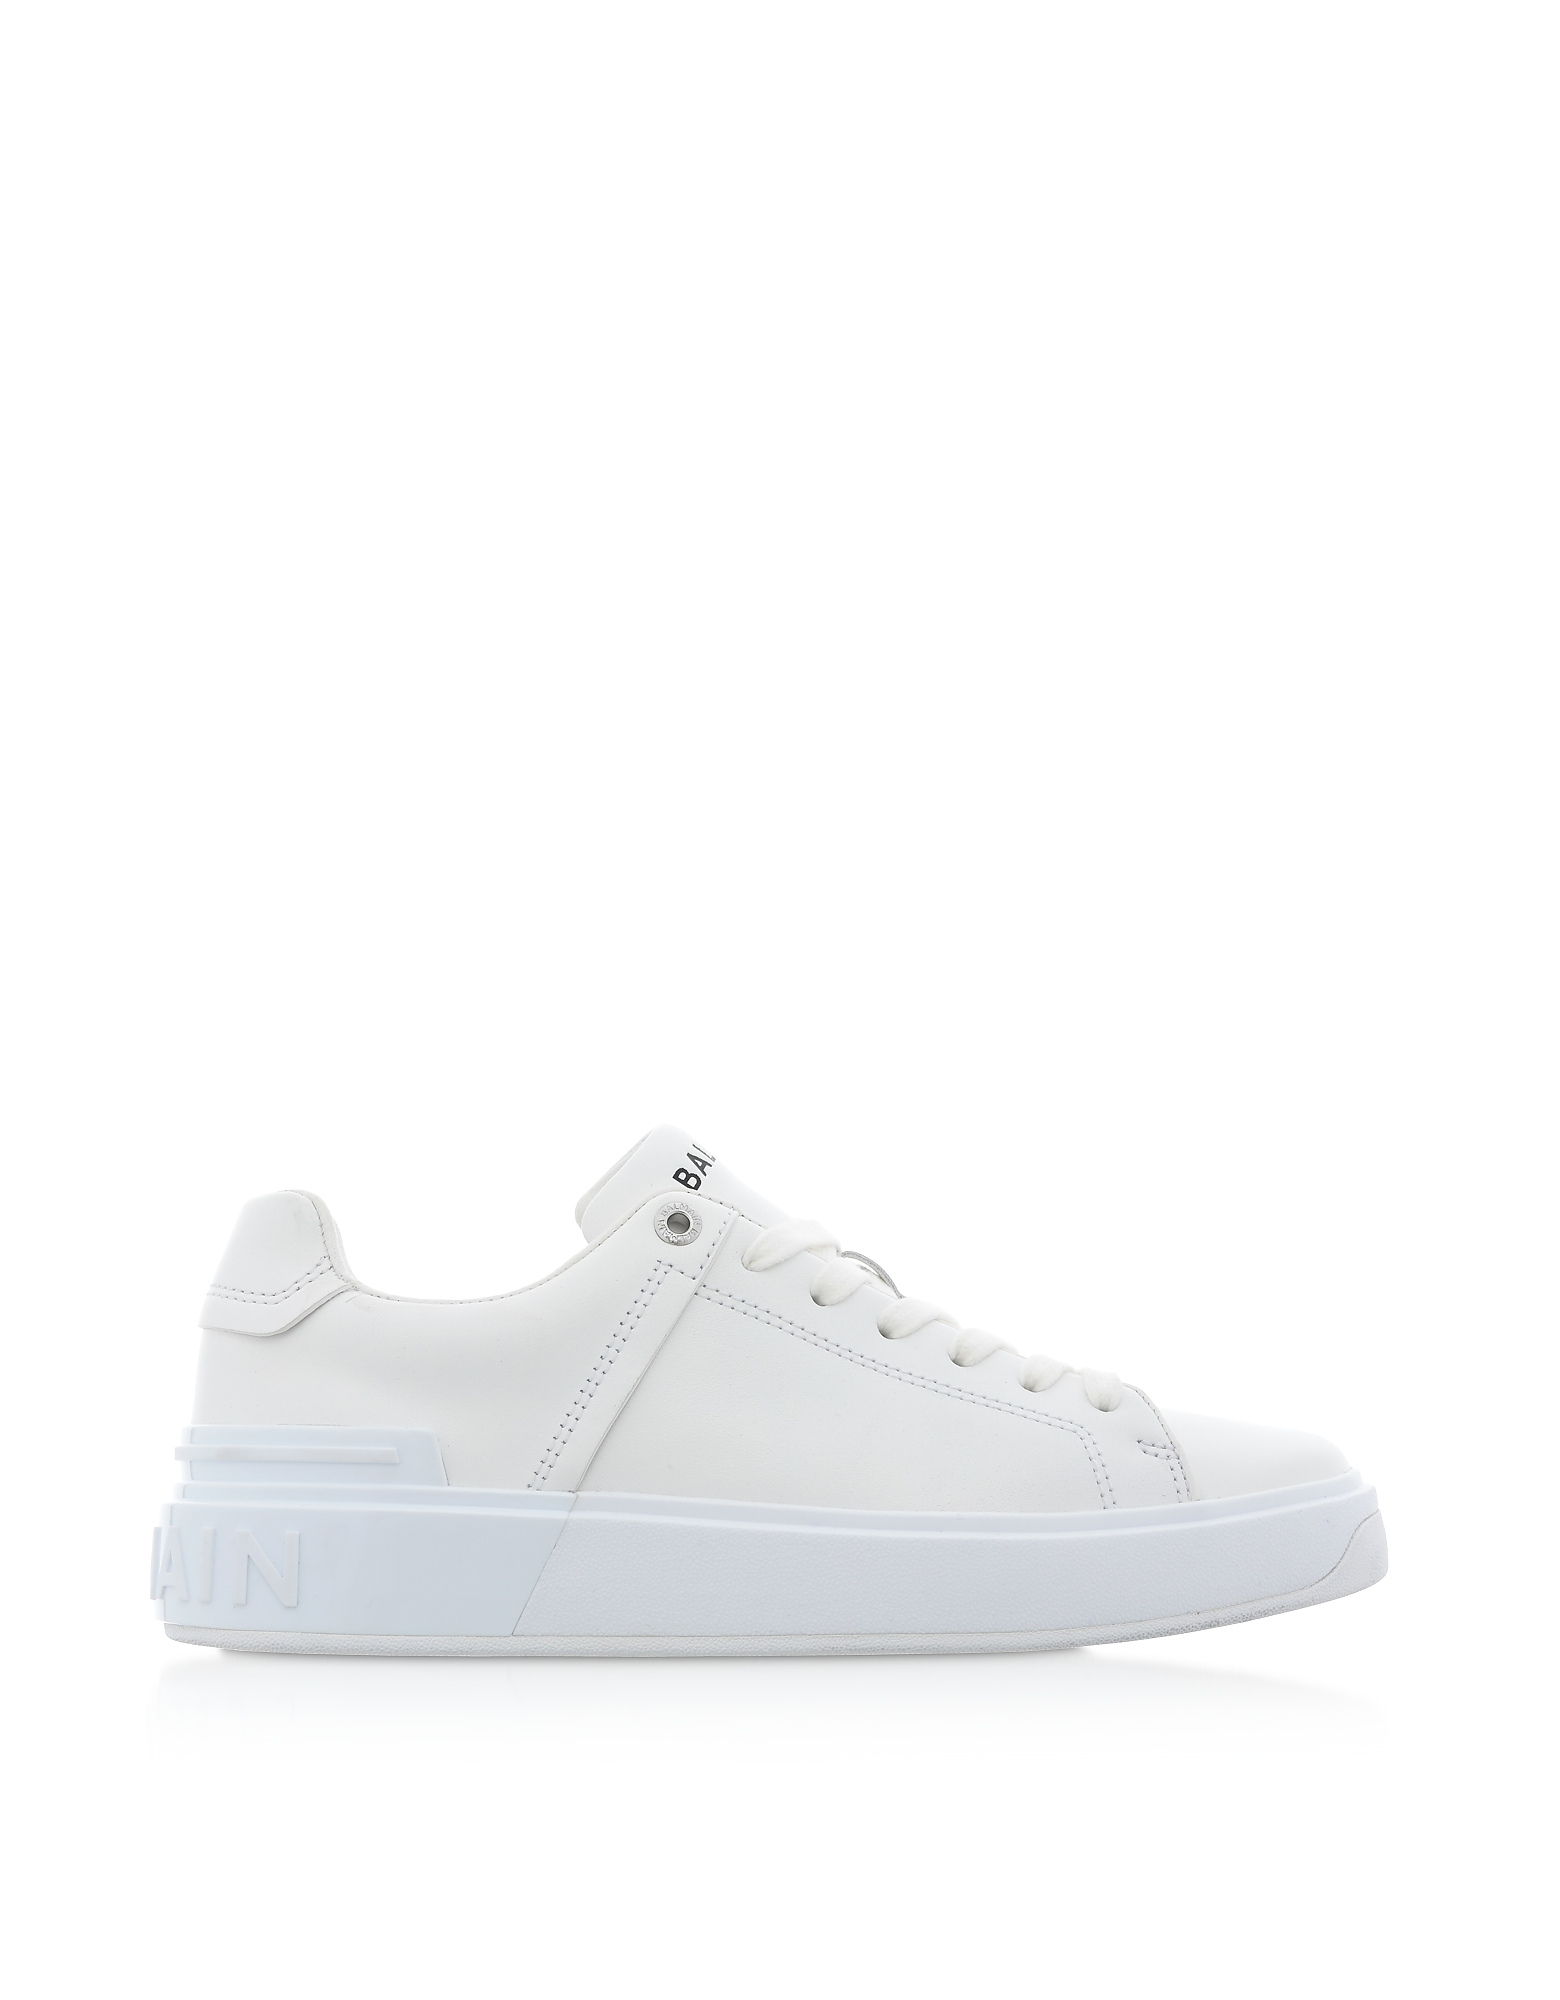 Balmain Designer Shoes, White Leather Lace up Women's Sneakers